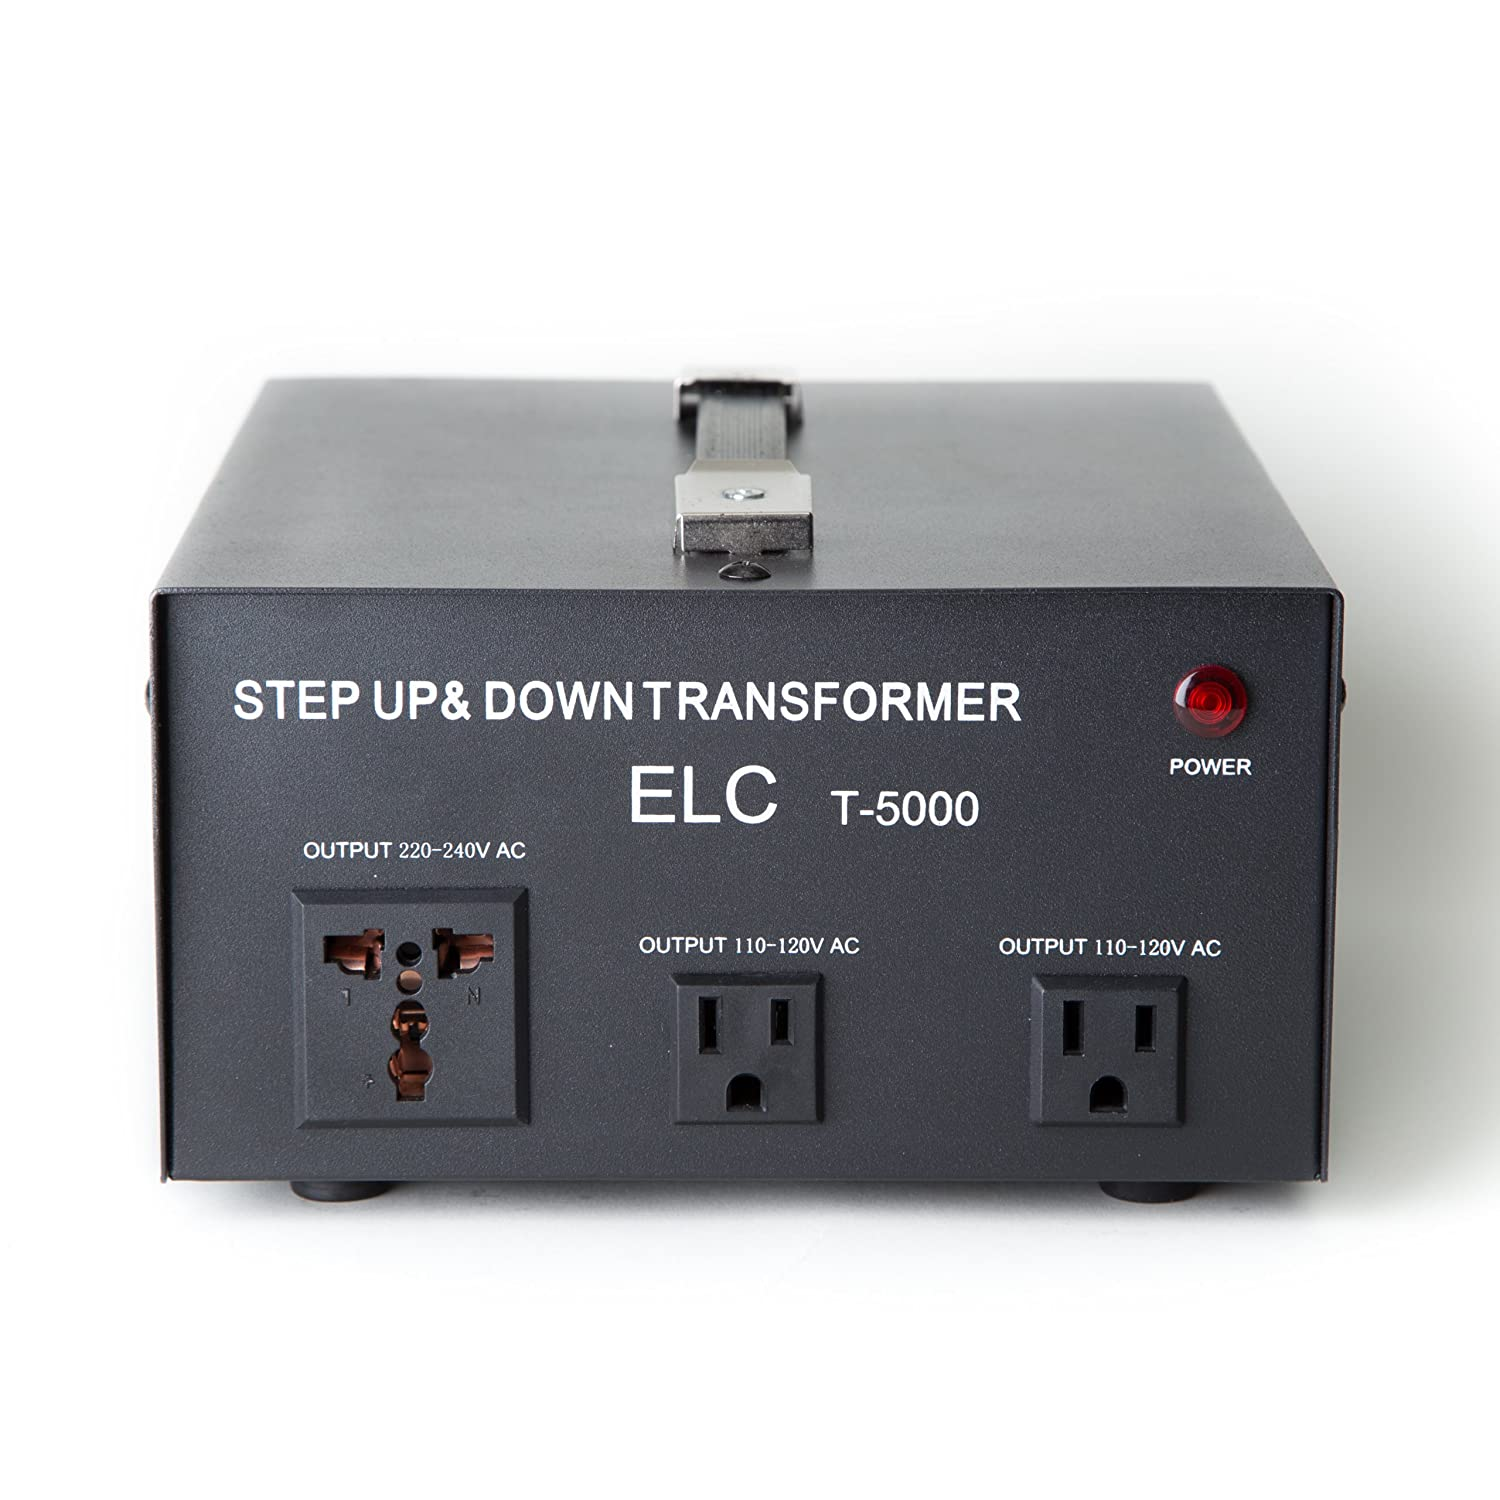 ELC T-5000 5000-Watt Voltage Converter Transformer - Step Up/Down - 110V/220V - Circuit Breaker Protection